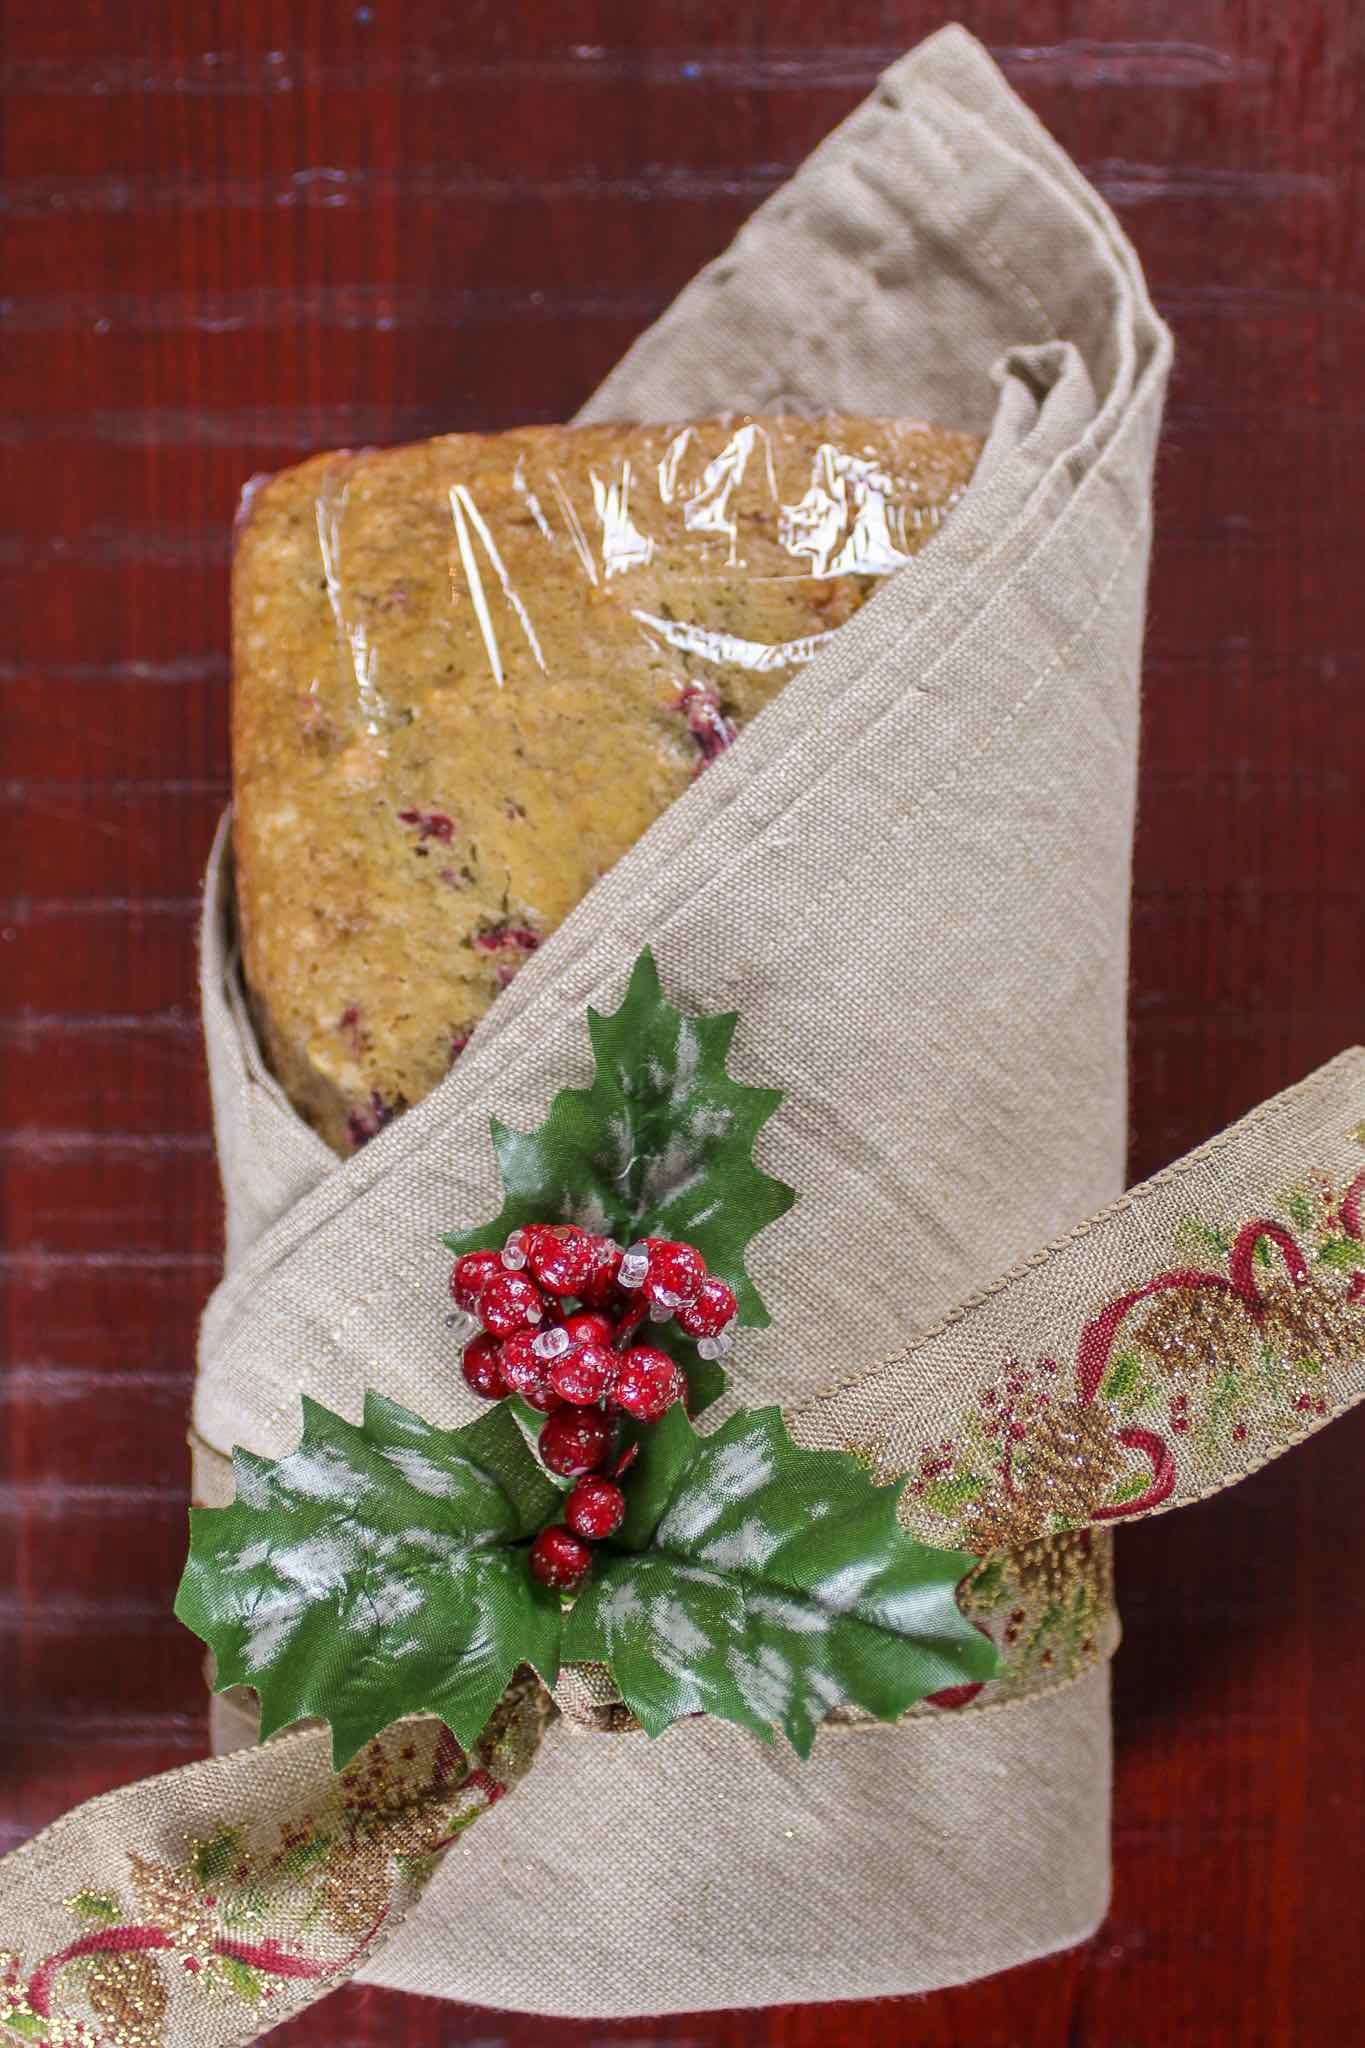 cranberry nut bread wrapped in cloth and tied with a ribbon